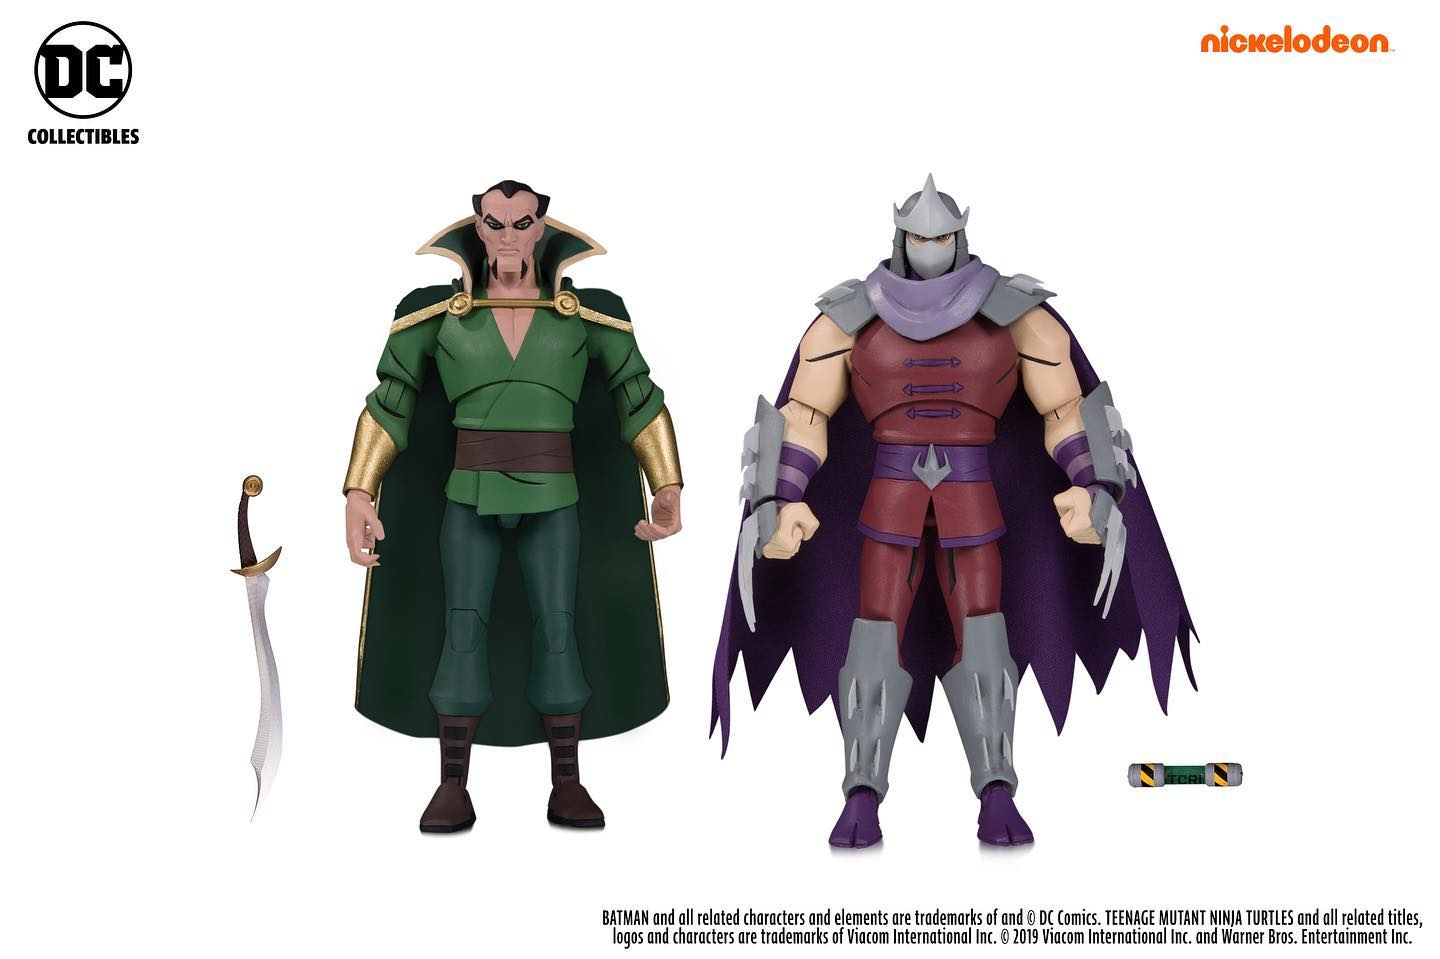 Ra's al Ghul & Shredder (2019 action figure set)